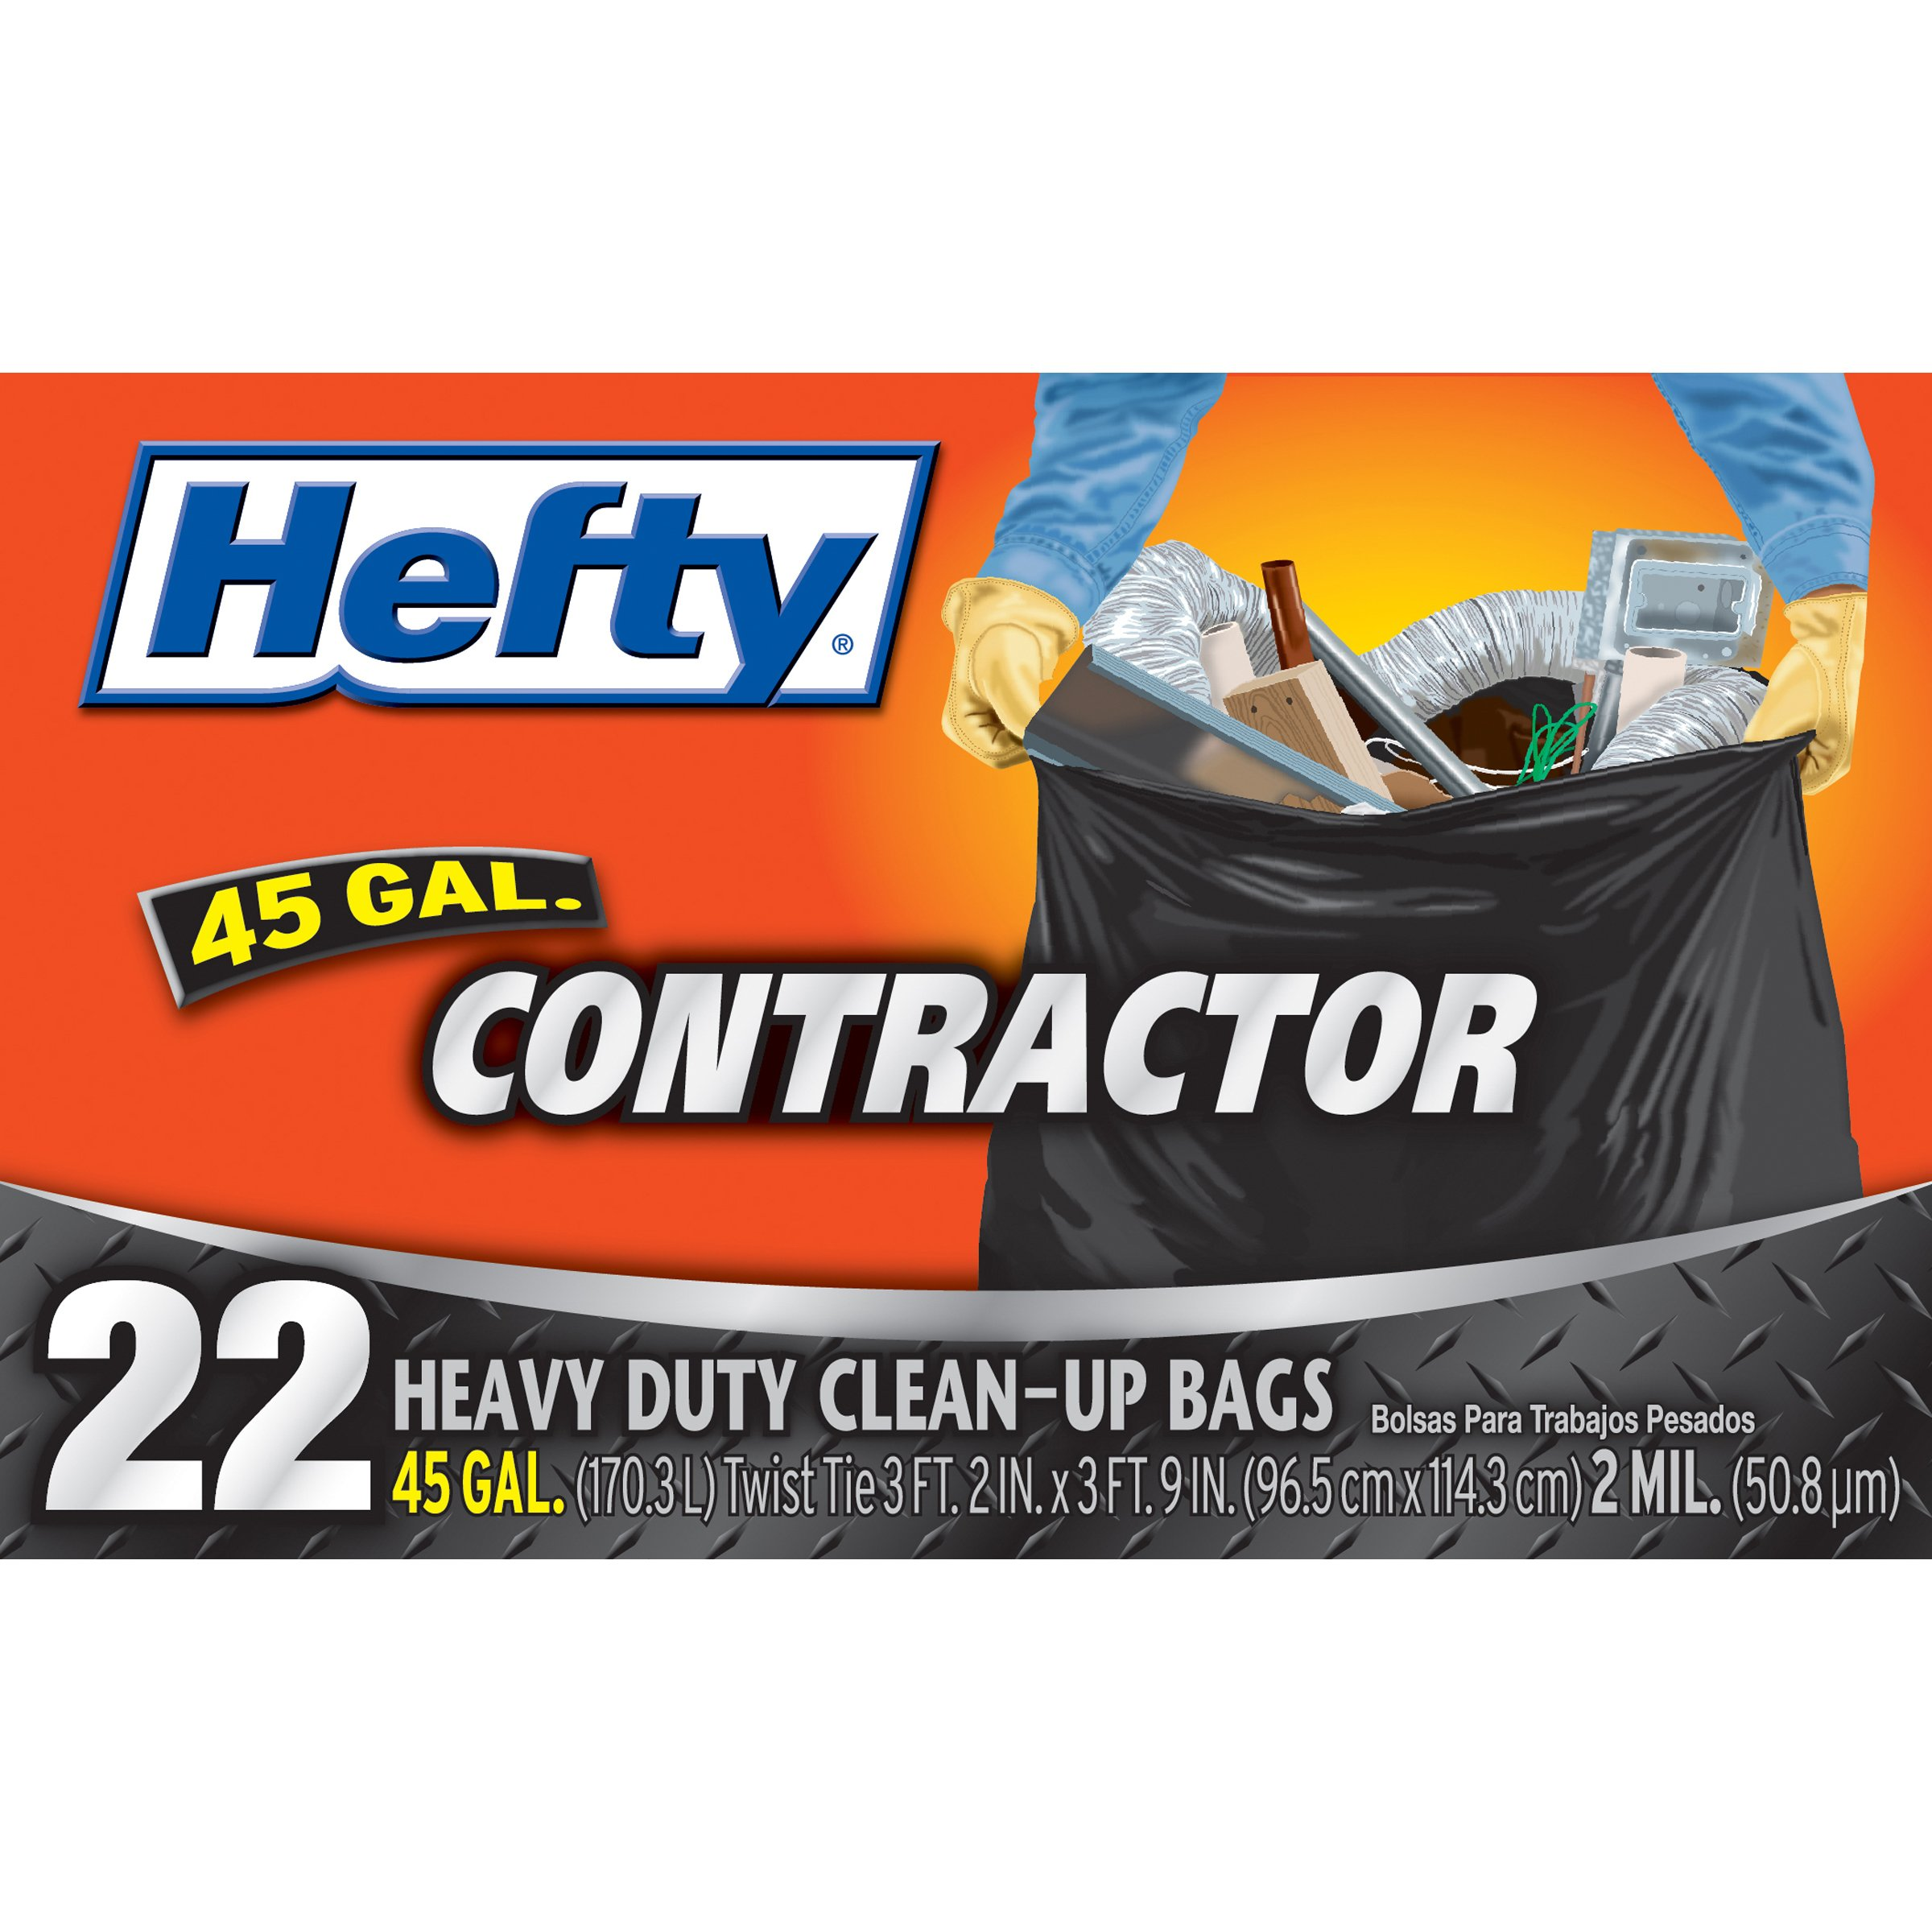 Hefty Heavy Duty Contractor Bags - 45 Gallon, 4 Packs of 22 Count (88 Total) by Hefty